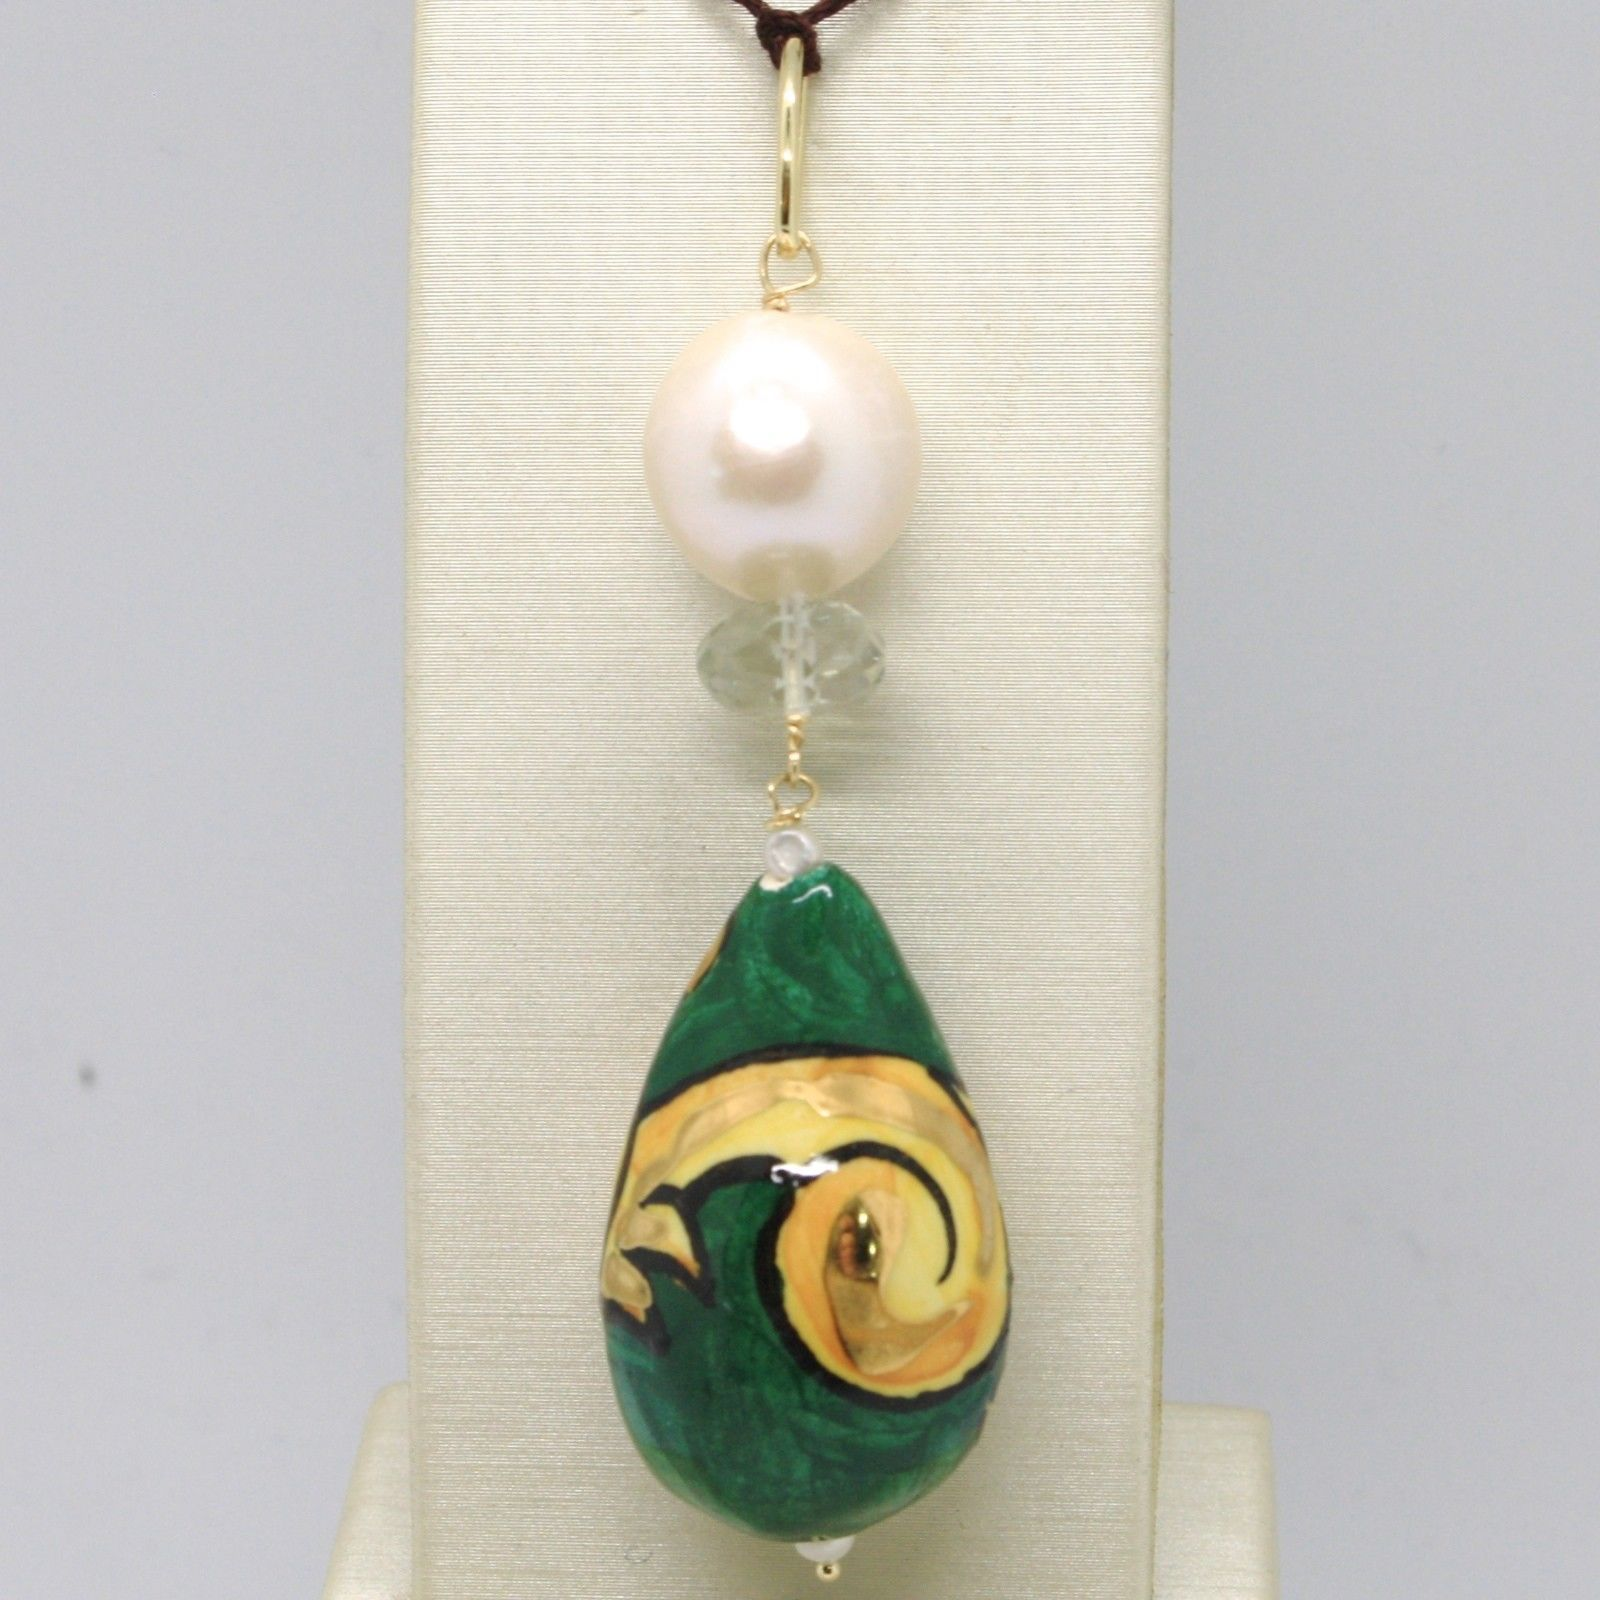 18K YELLOW GOLD PENDANT PRASIOLITE PEARL, CERAMIC BIG DROP HAND PAINTED IN ITALY